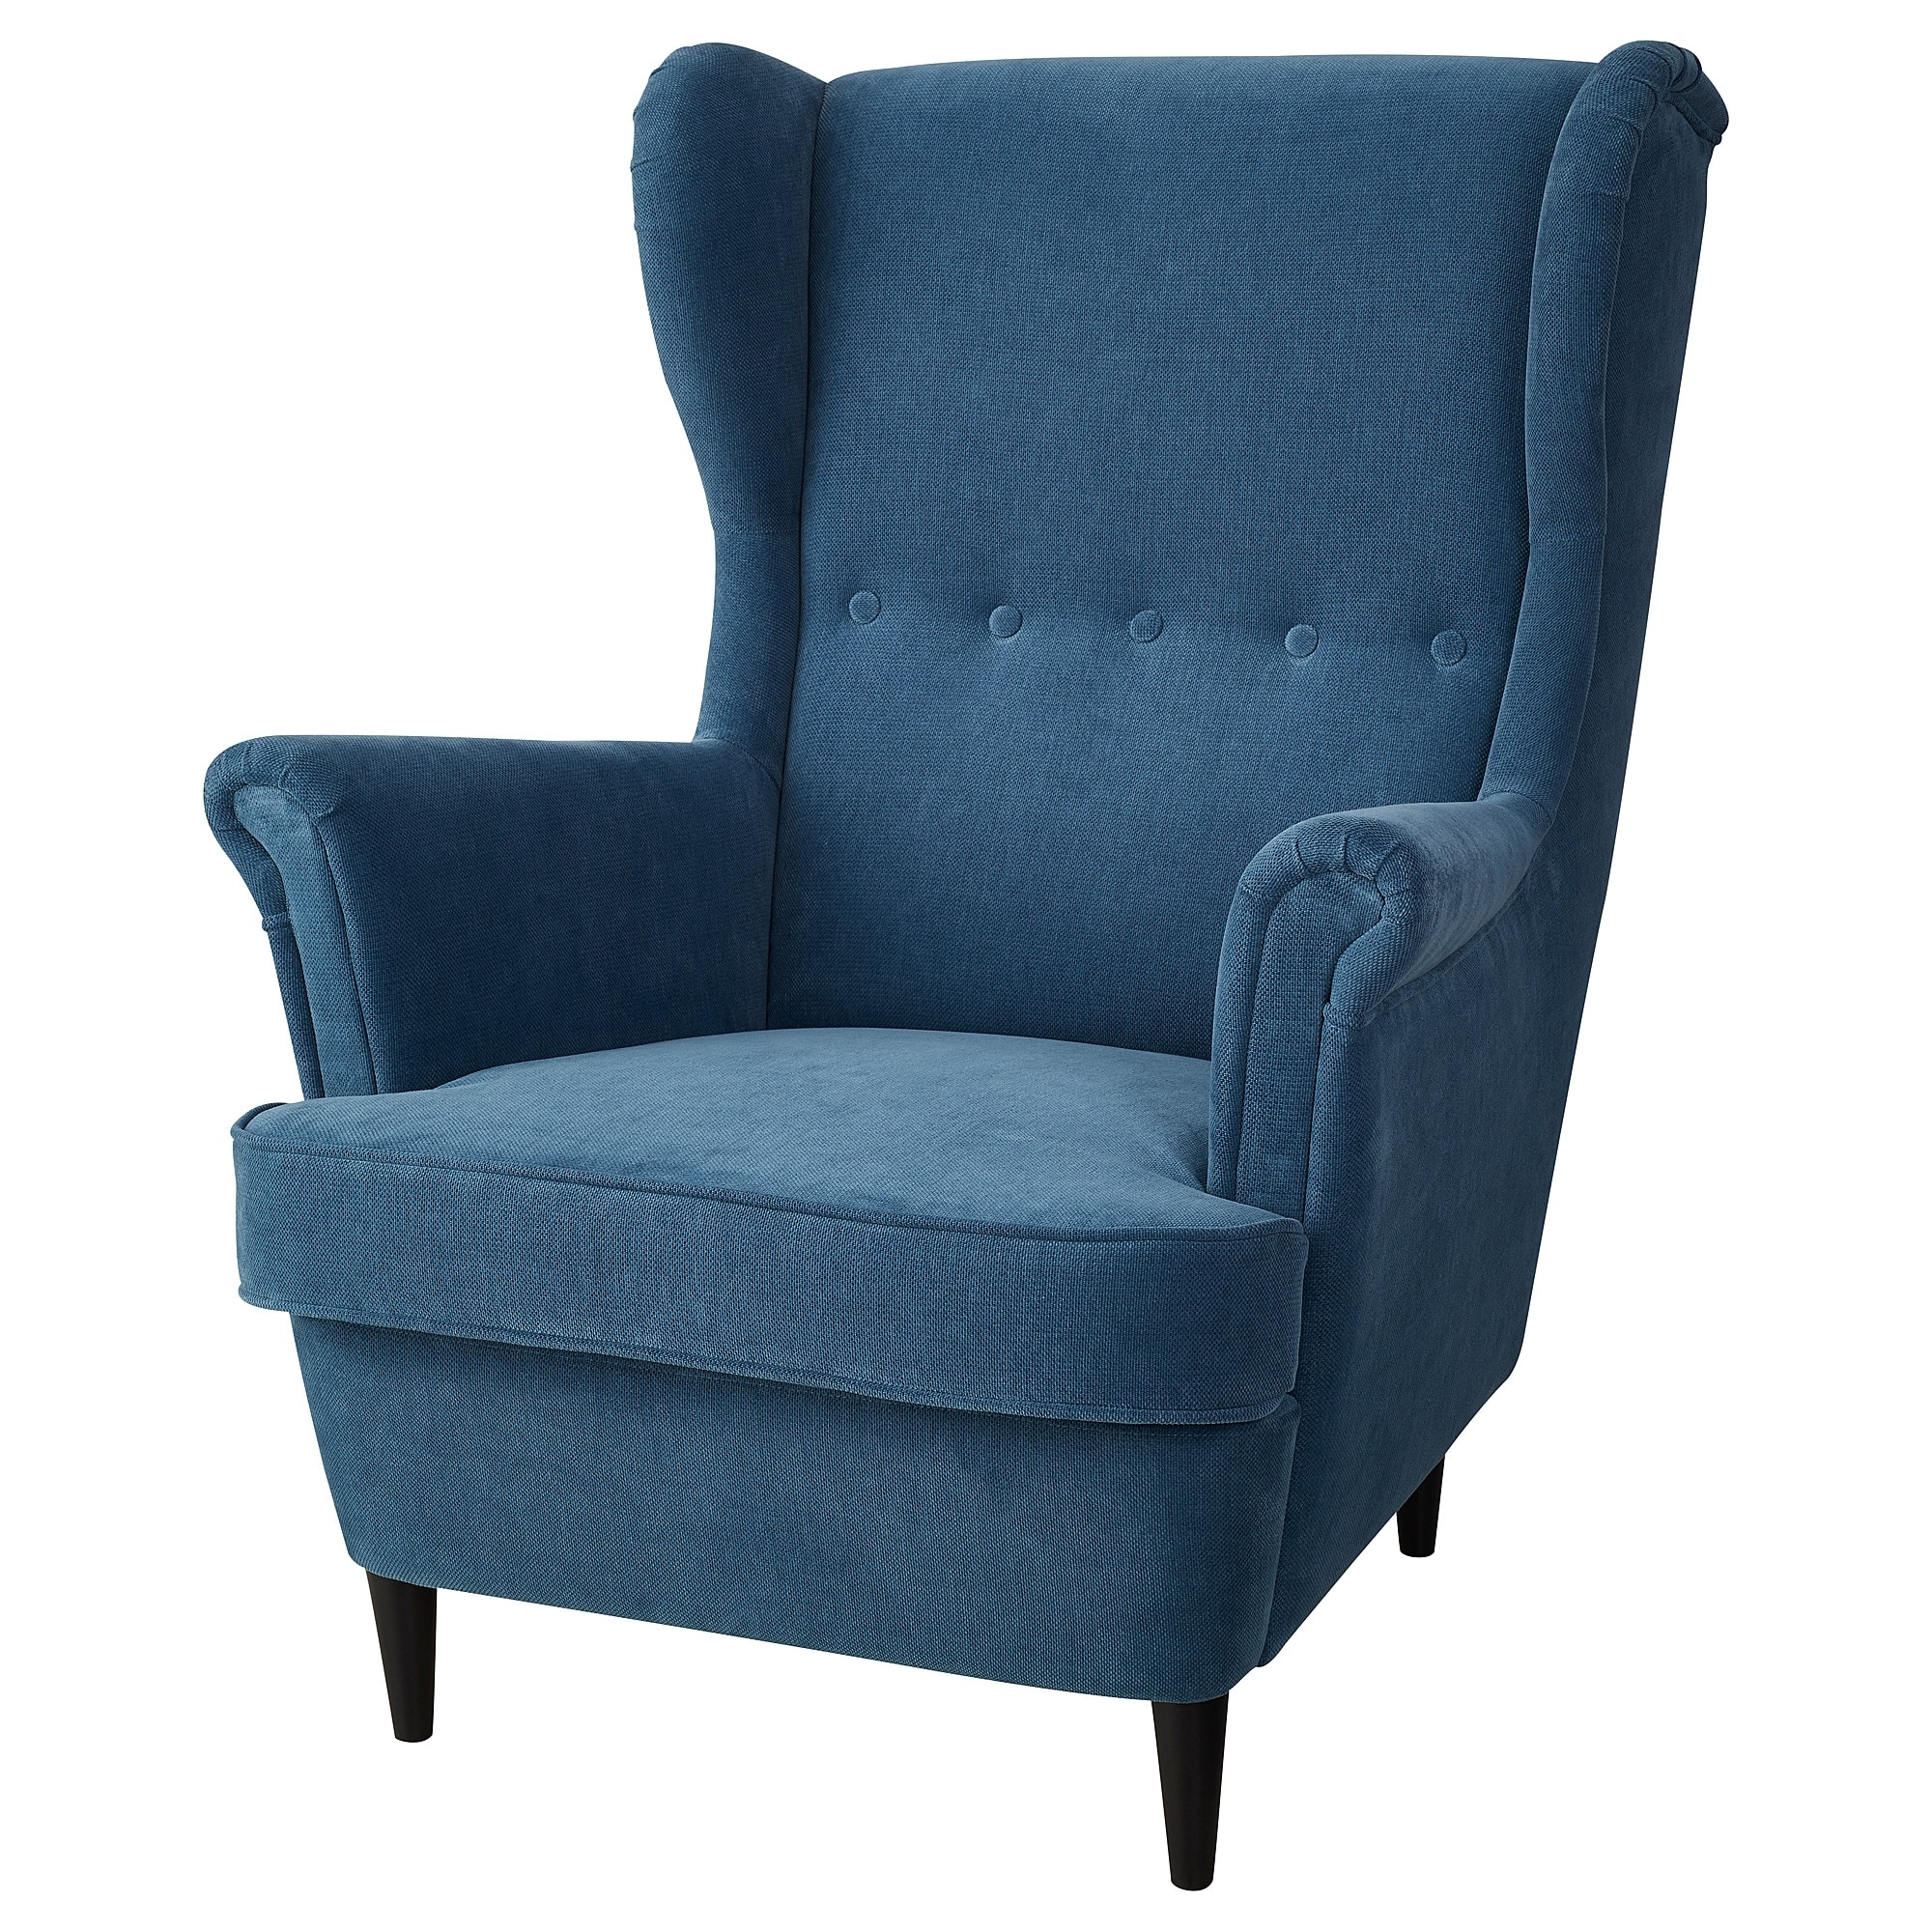 Pilo Blue Side Chairs Inside Most Up To Date Strandmon Wing Chair Tallmyra Blue – Ikea (View 7 of 20)